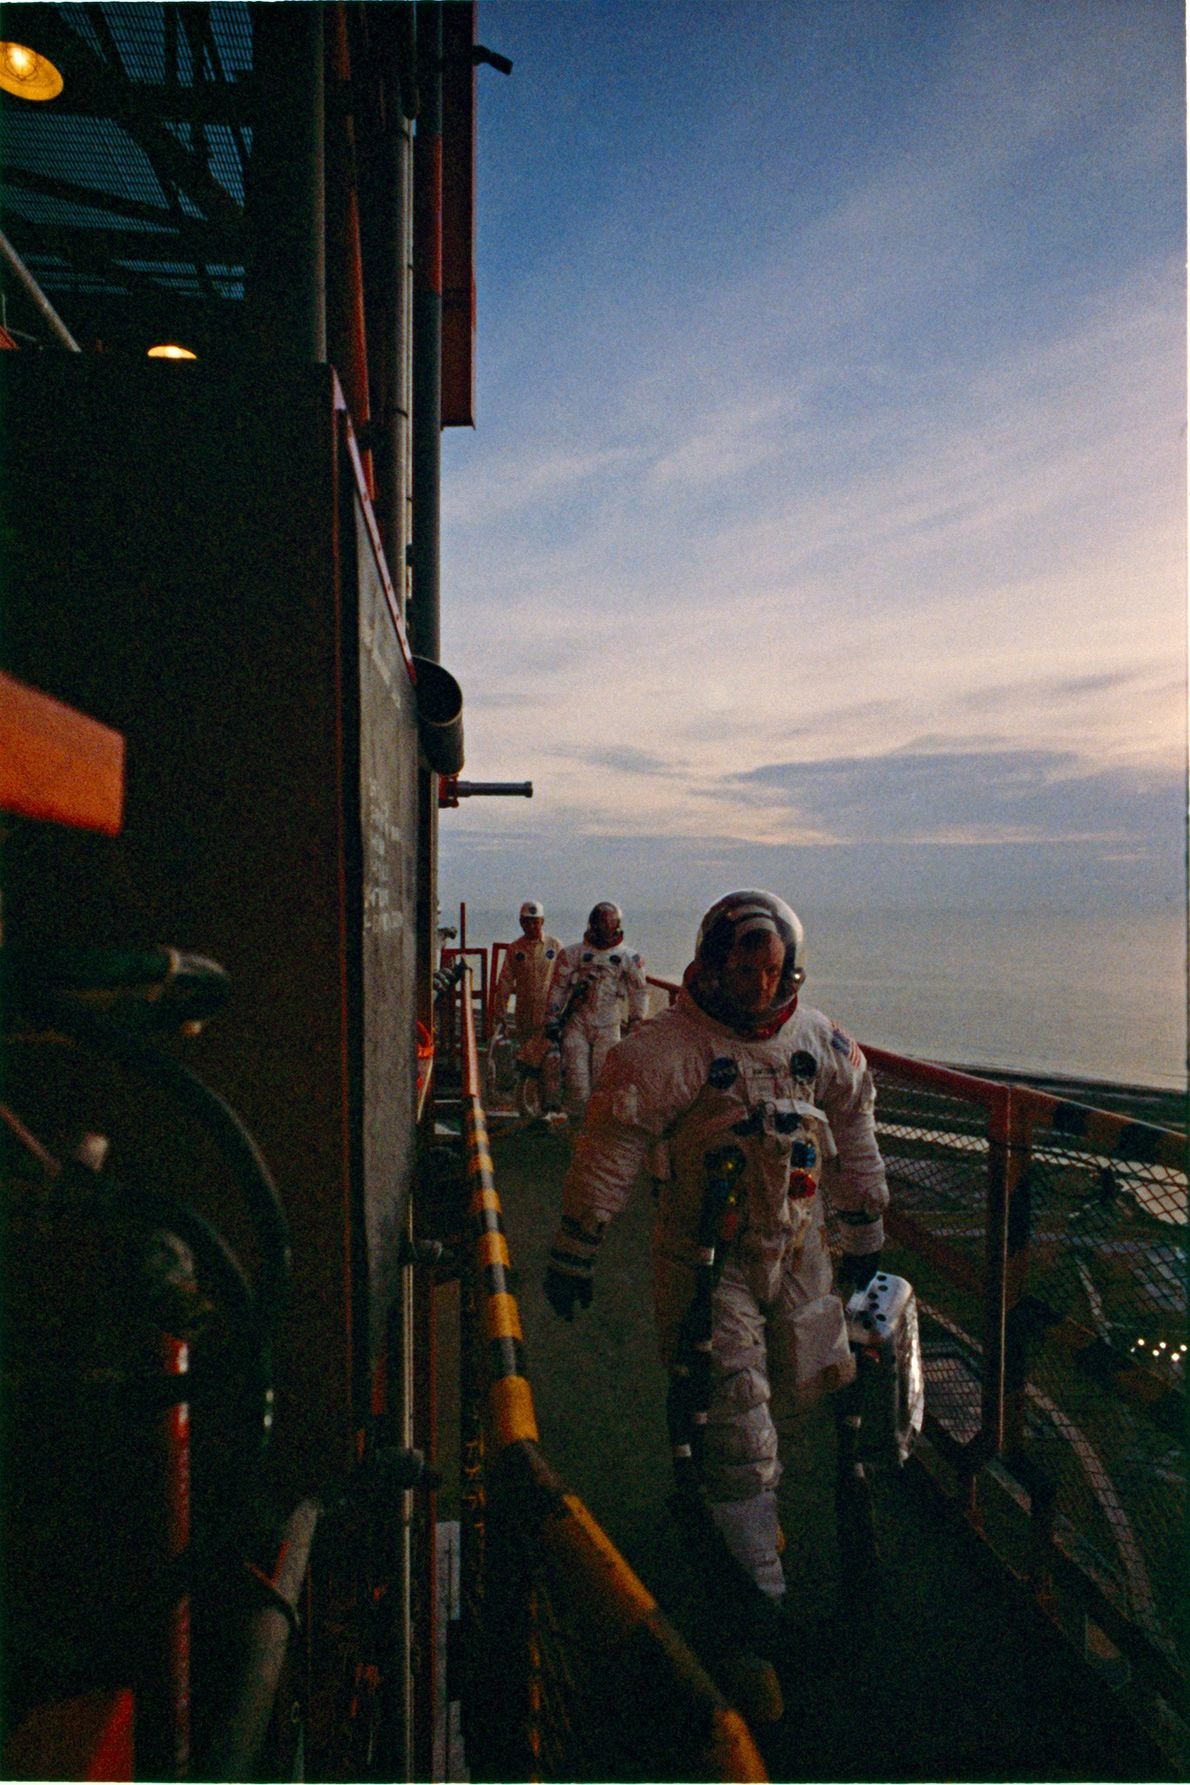 Dressed in their flight suits, the Apollo 11 crew members walk toward the spacecraft at sunrise ...